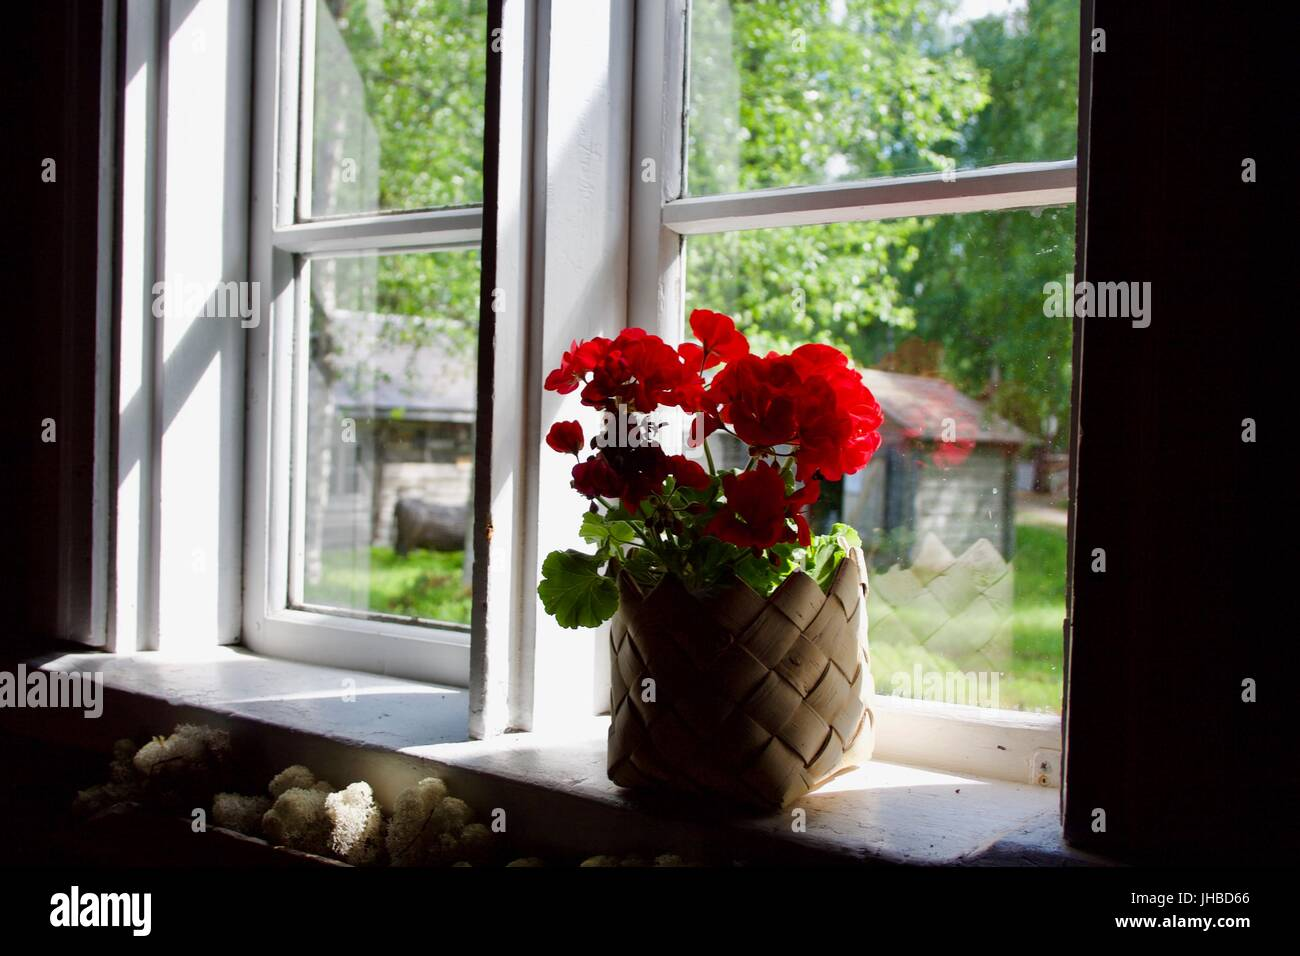 A red flower pot by a window. Old Finnish farmhouse window and farm - Stock Image